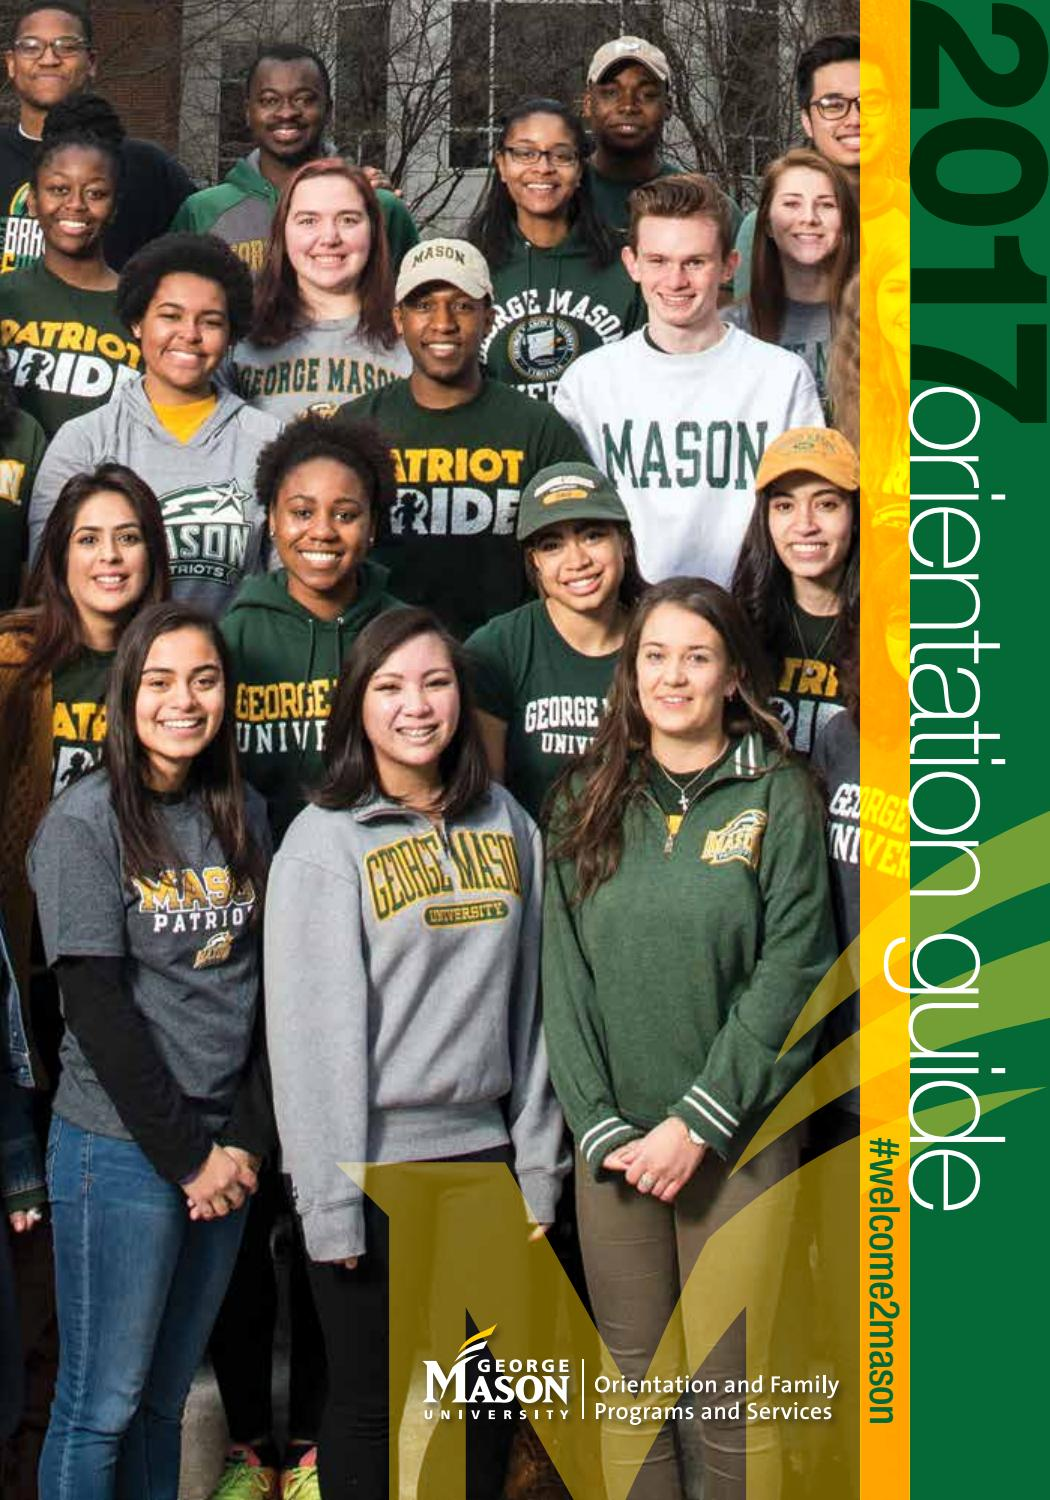 2017 George Mason University Orientation Guide by GMU-OFPS - issuu